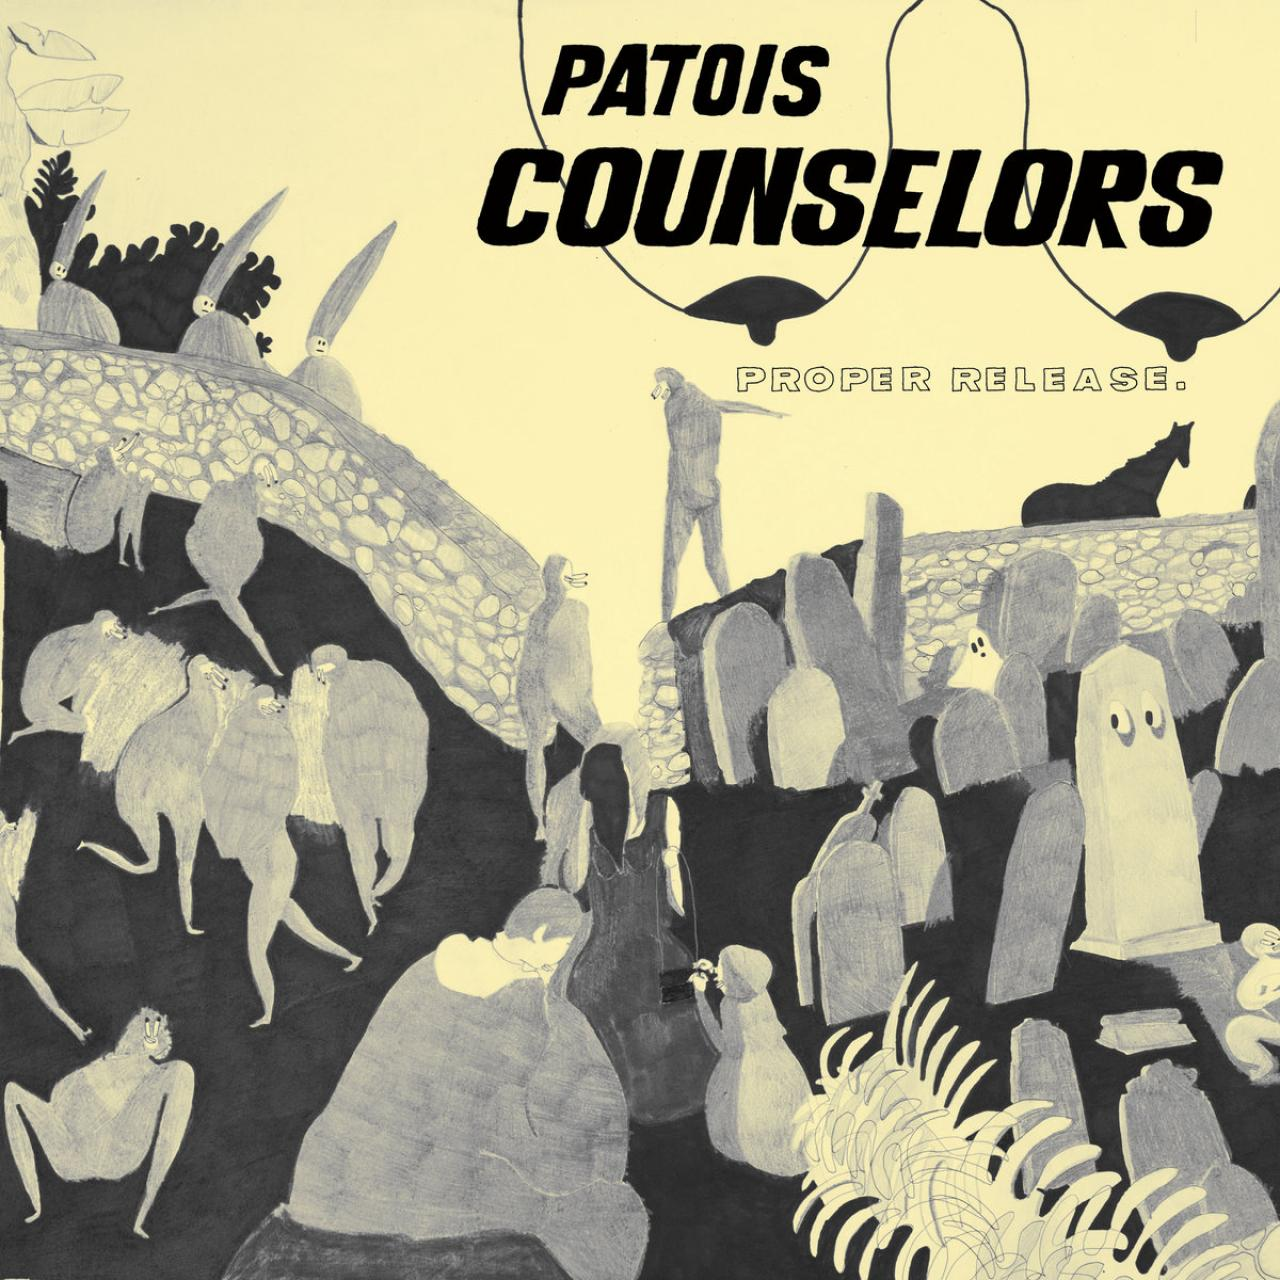 Patois Counselors - Proper Release album cover